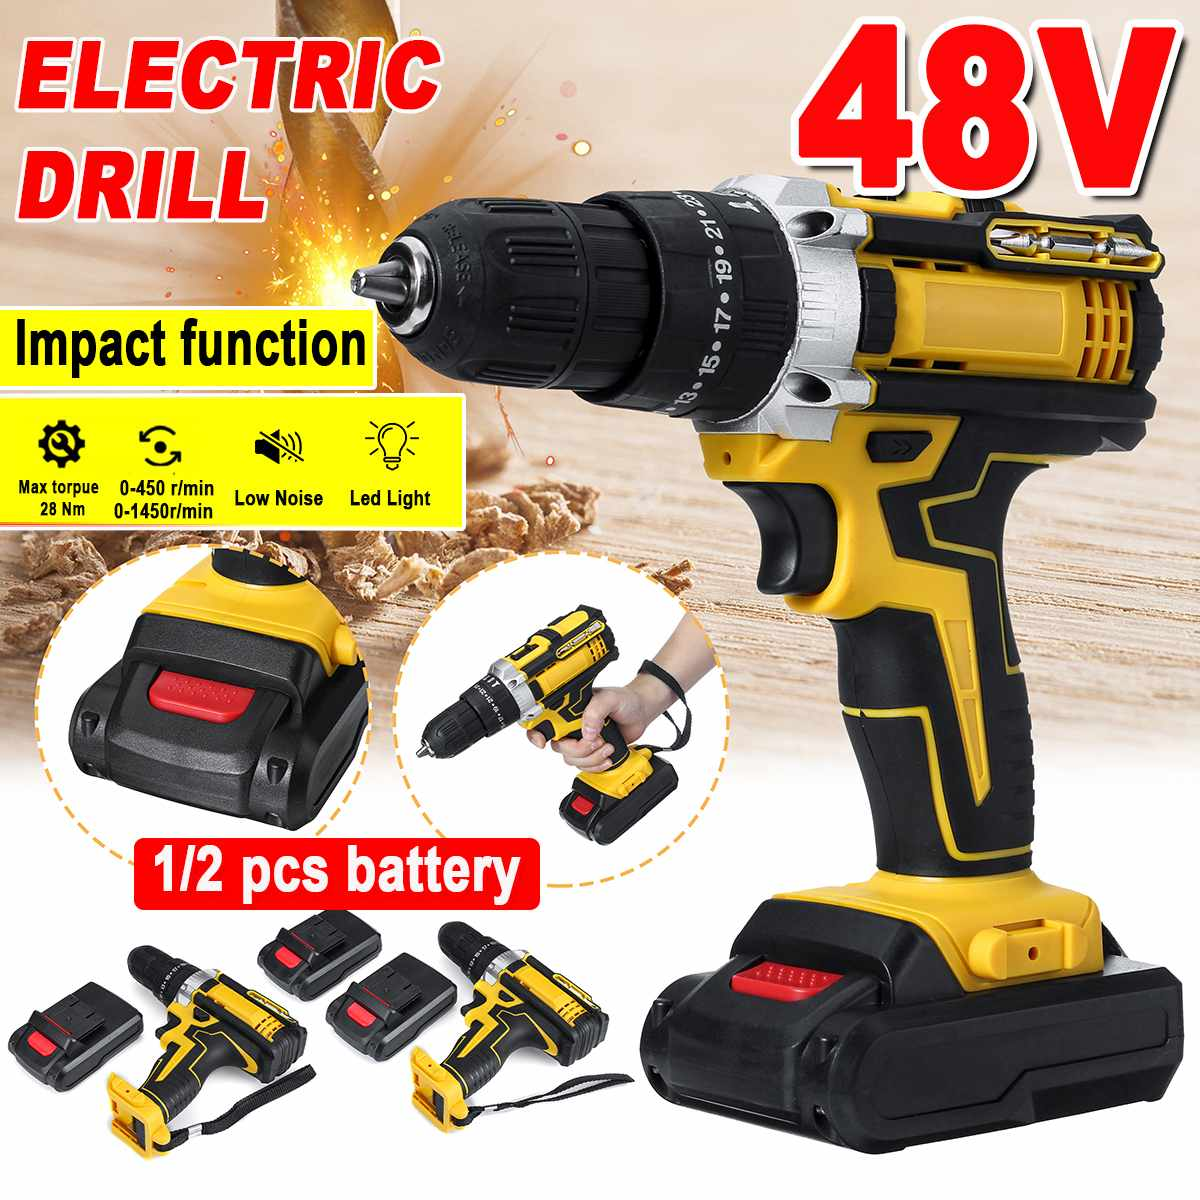 Professional 3 In 1 48V Max Electric Screwdriver Cordless Drill Impact Drill Power Driver DC Lithium-Ion Battery 2-Speed 25-28Nm